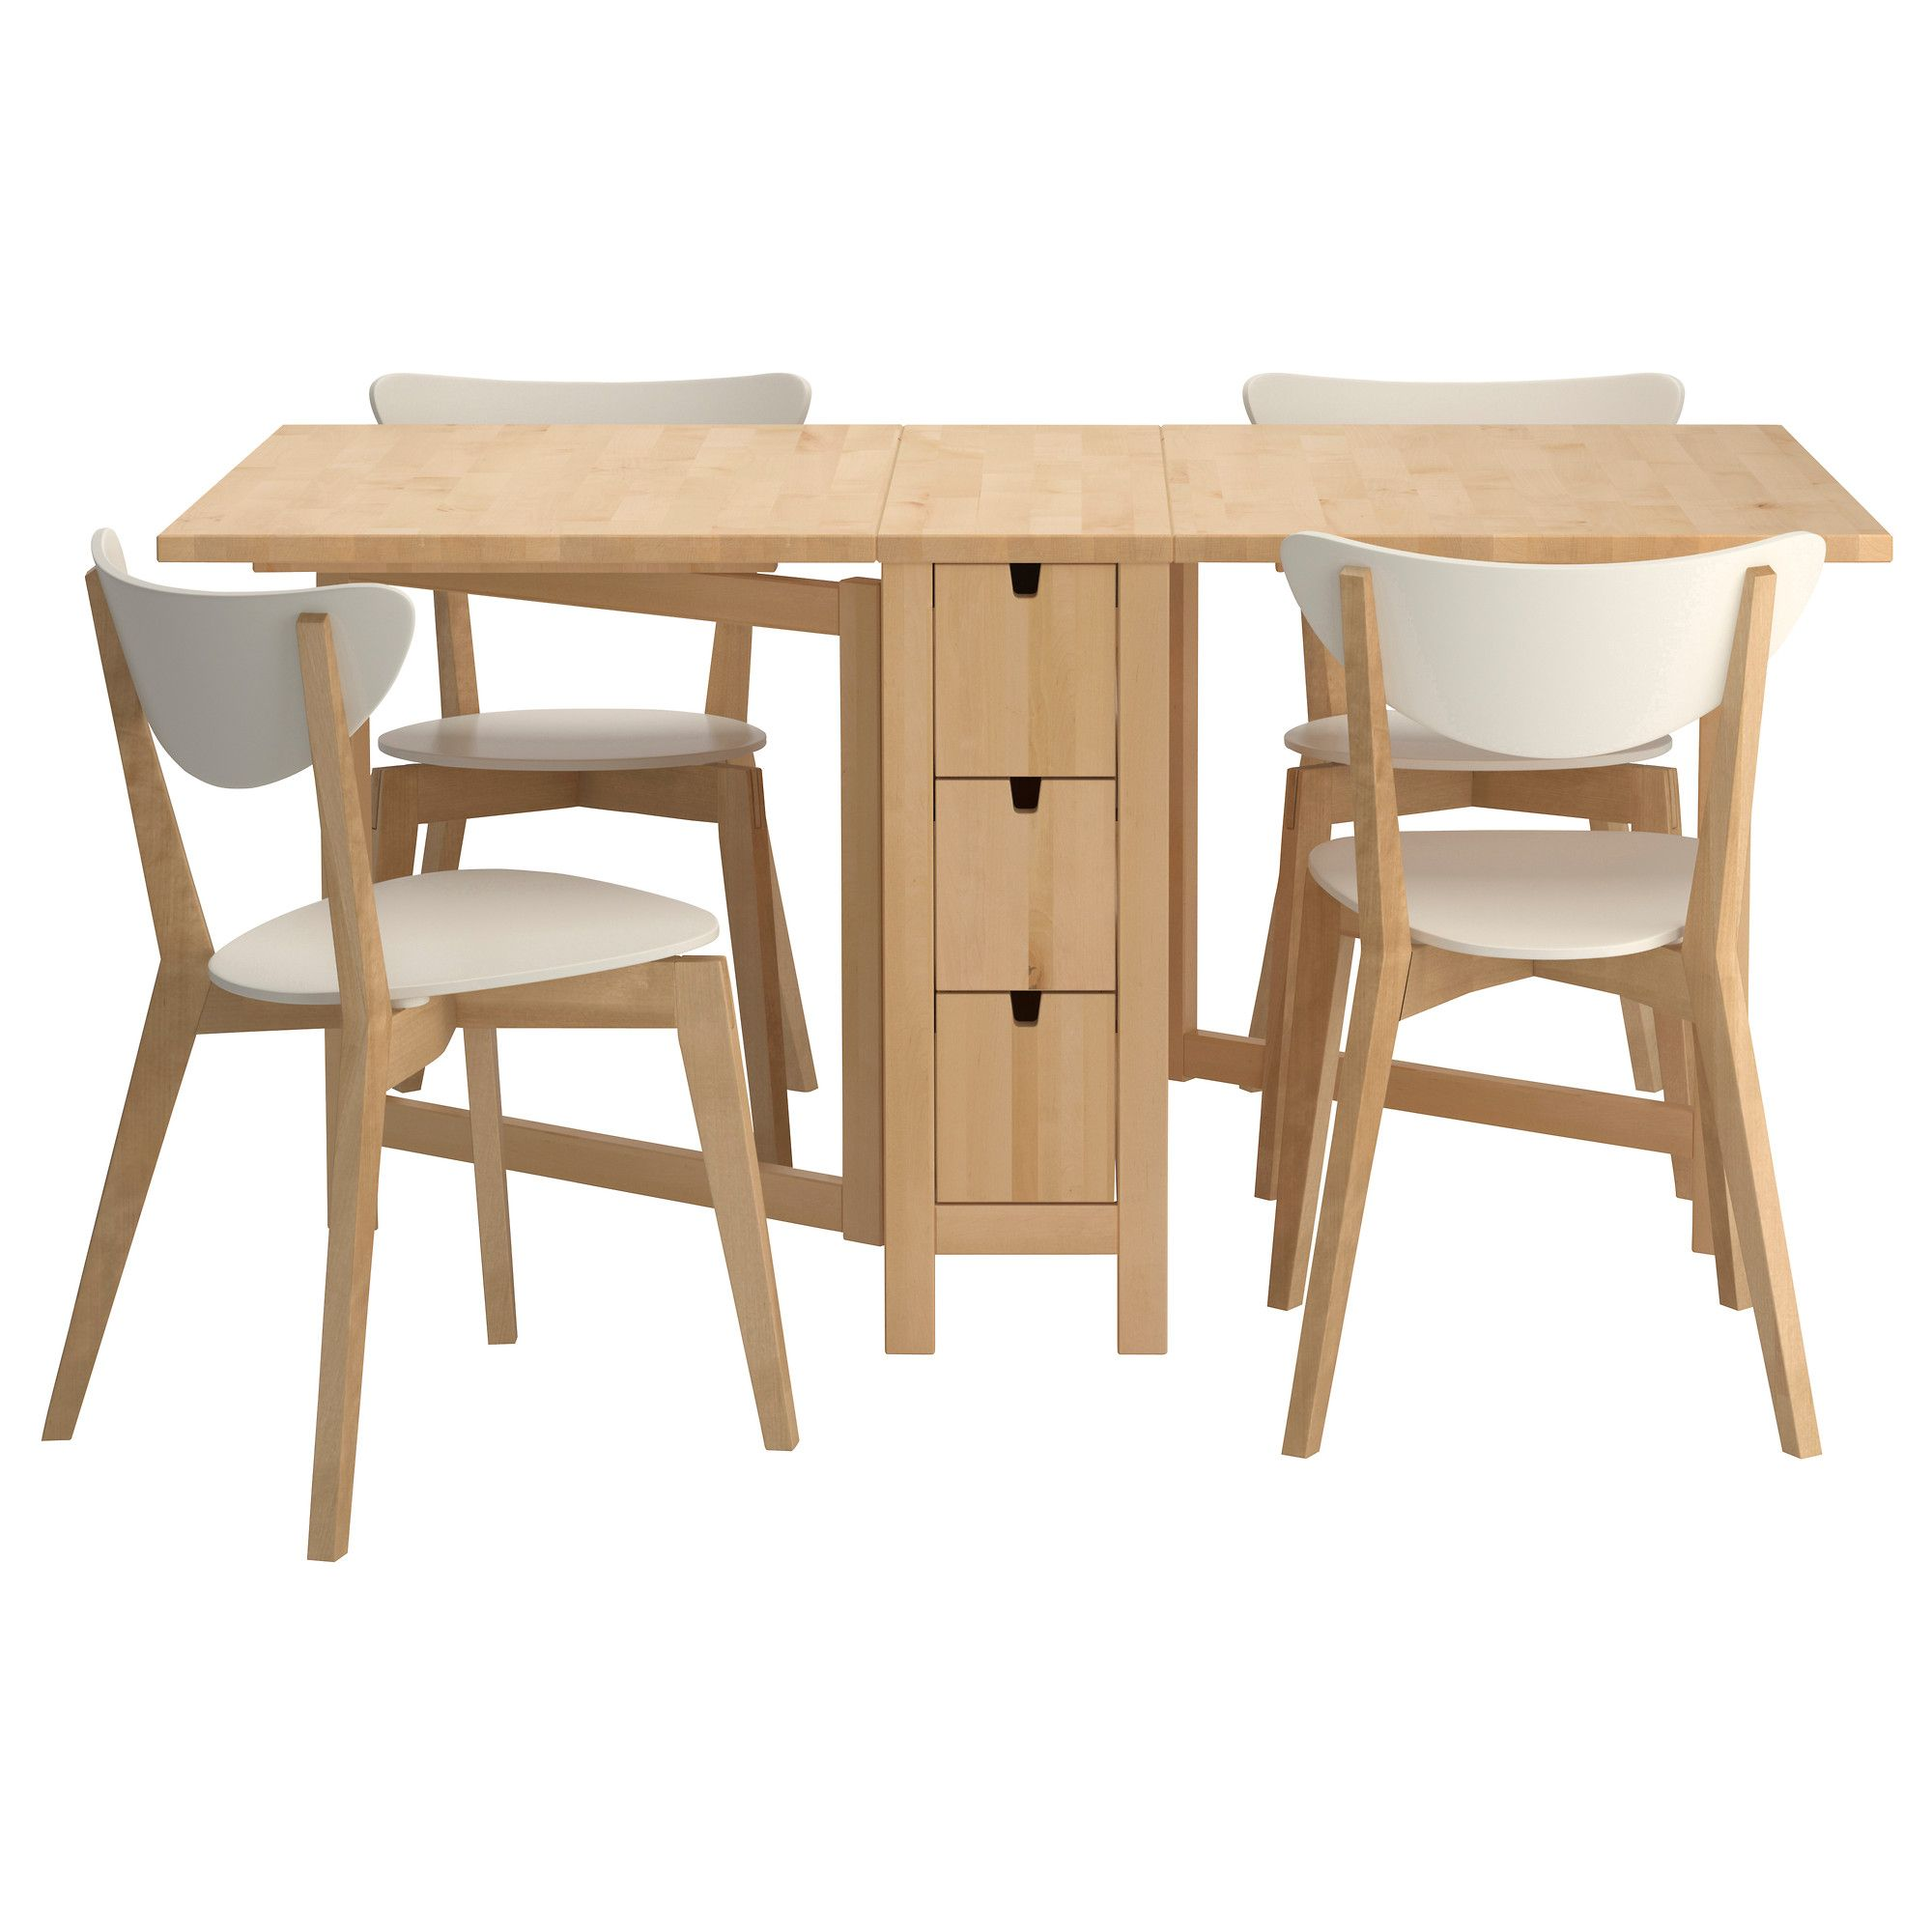 Norden nordmyra table and 4 chairs ikea for the love for Kitchen table and chairs